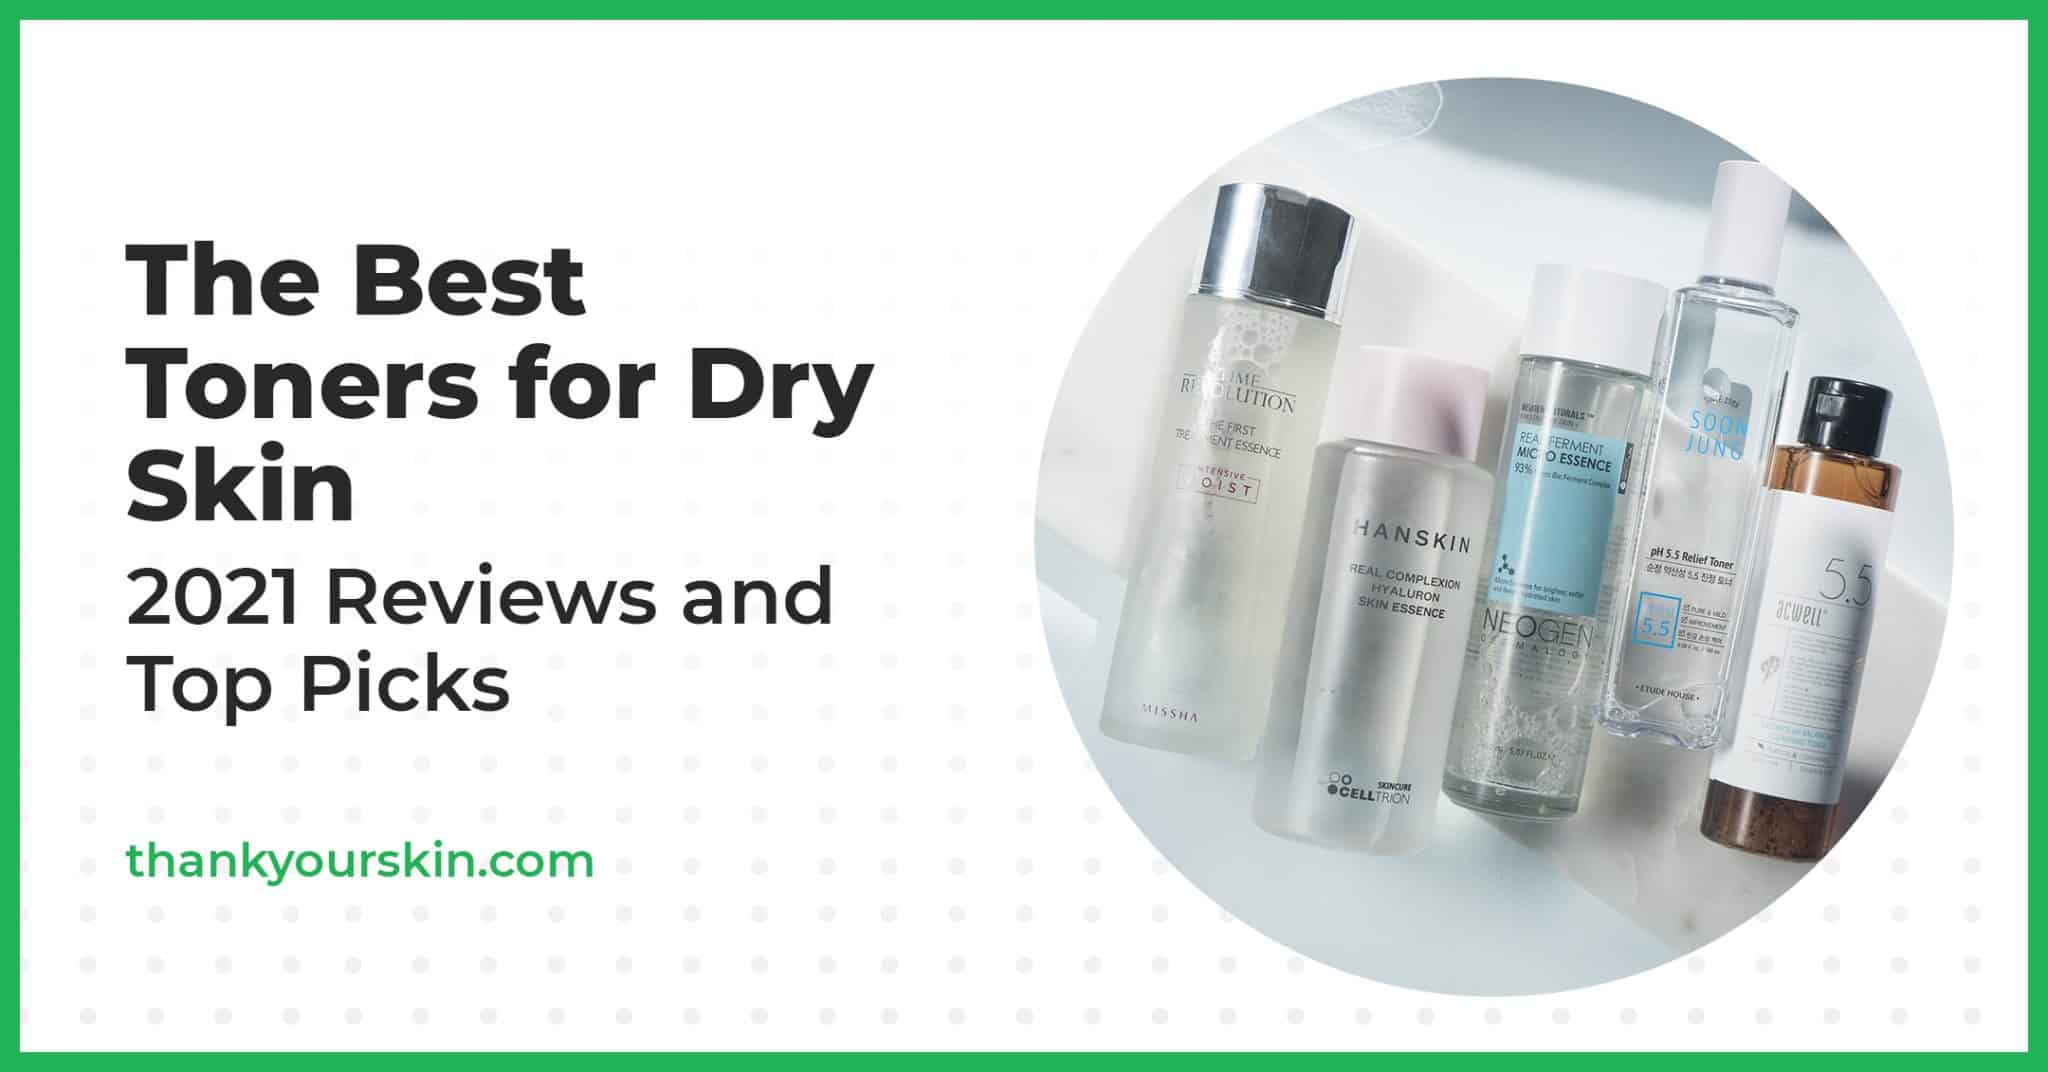 The Best Toners for Dry Skin – 2021 Reviews and Top Picks